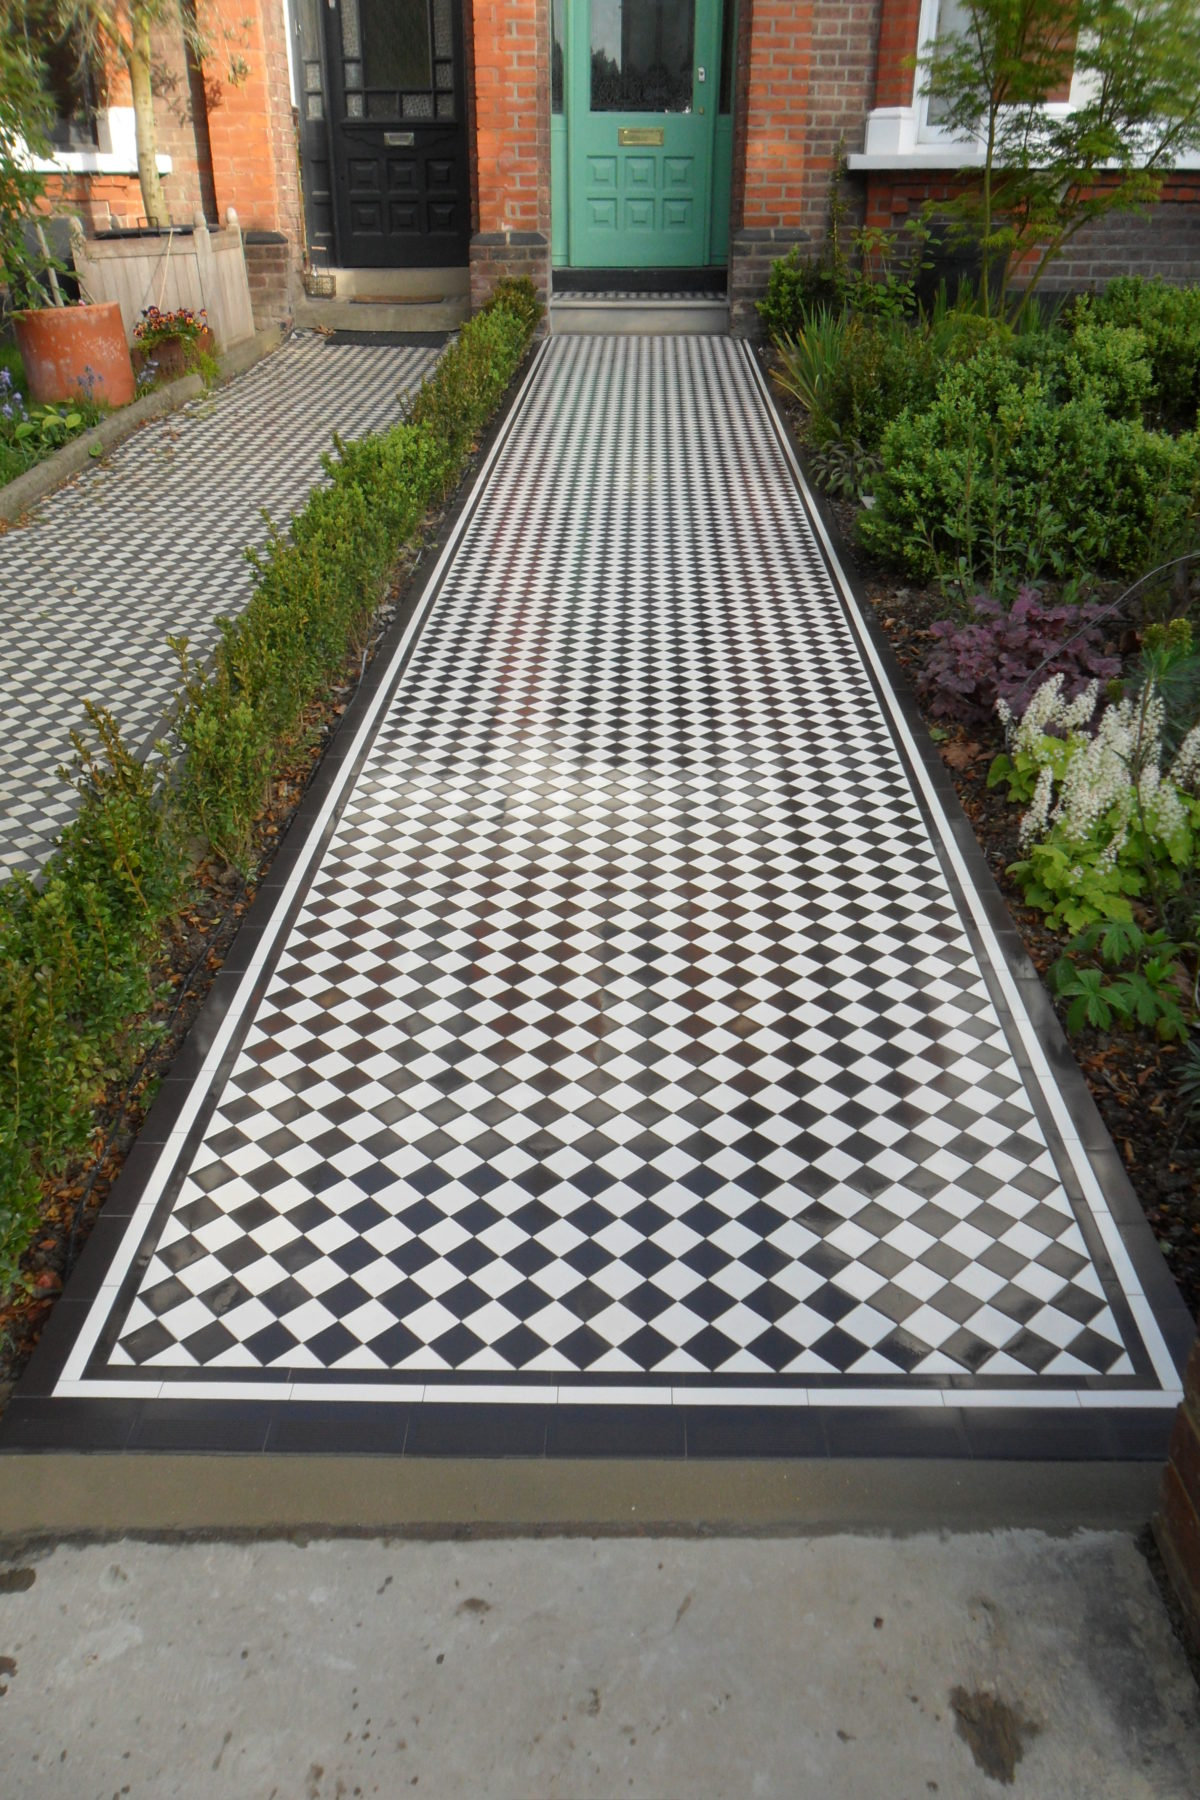 Checkerboard  Black and White Victorian Pathway NW66DA Chevening Rd London  Specialist tiling